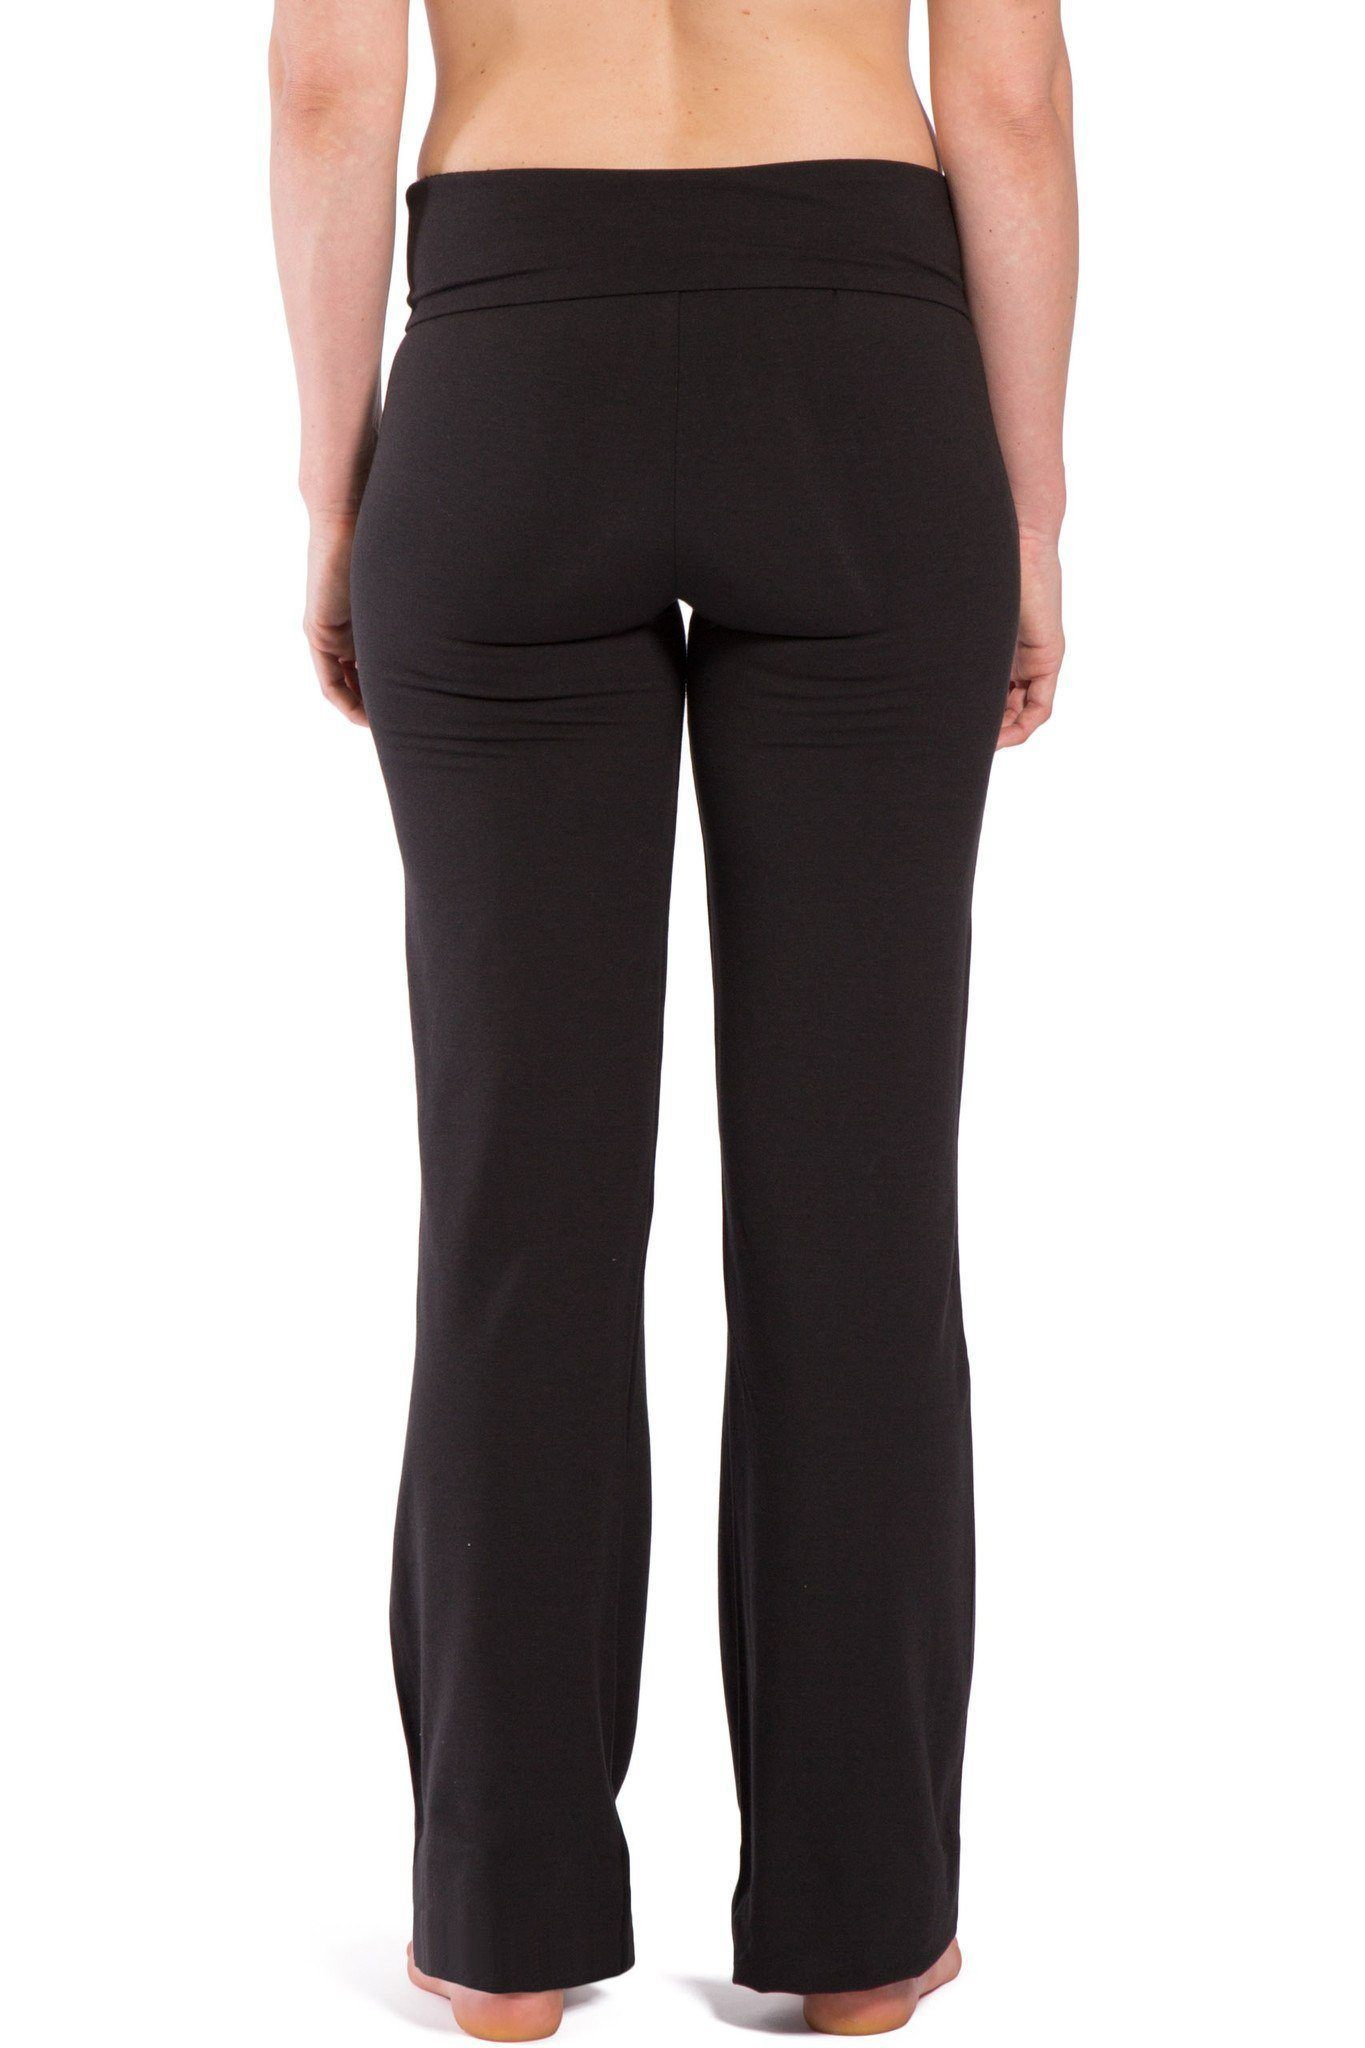 Shop for foldover yoga capri online at Target. Free shipping on purchases over $35 and save 5% every day with your Target REDcard.